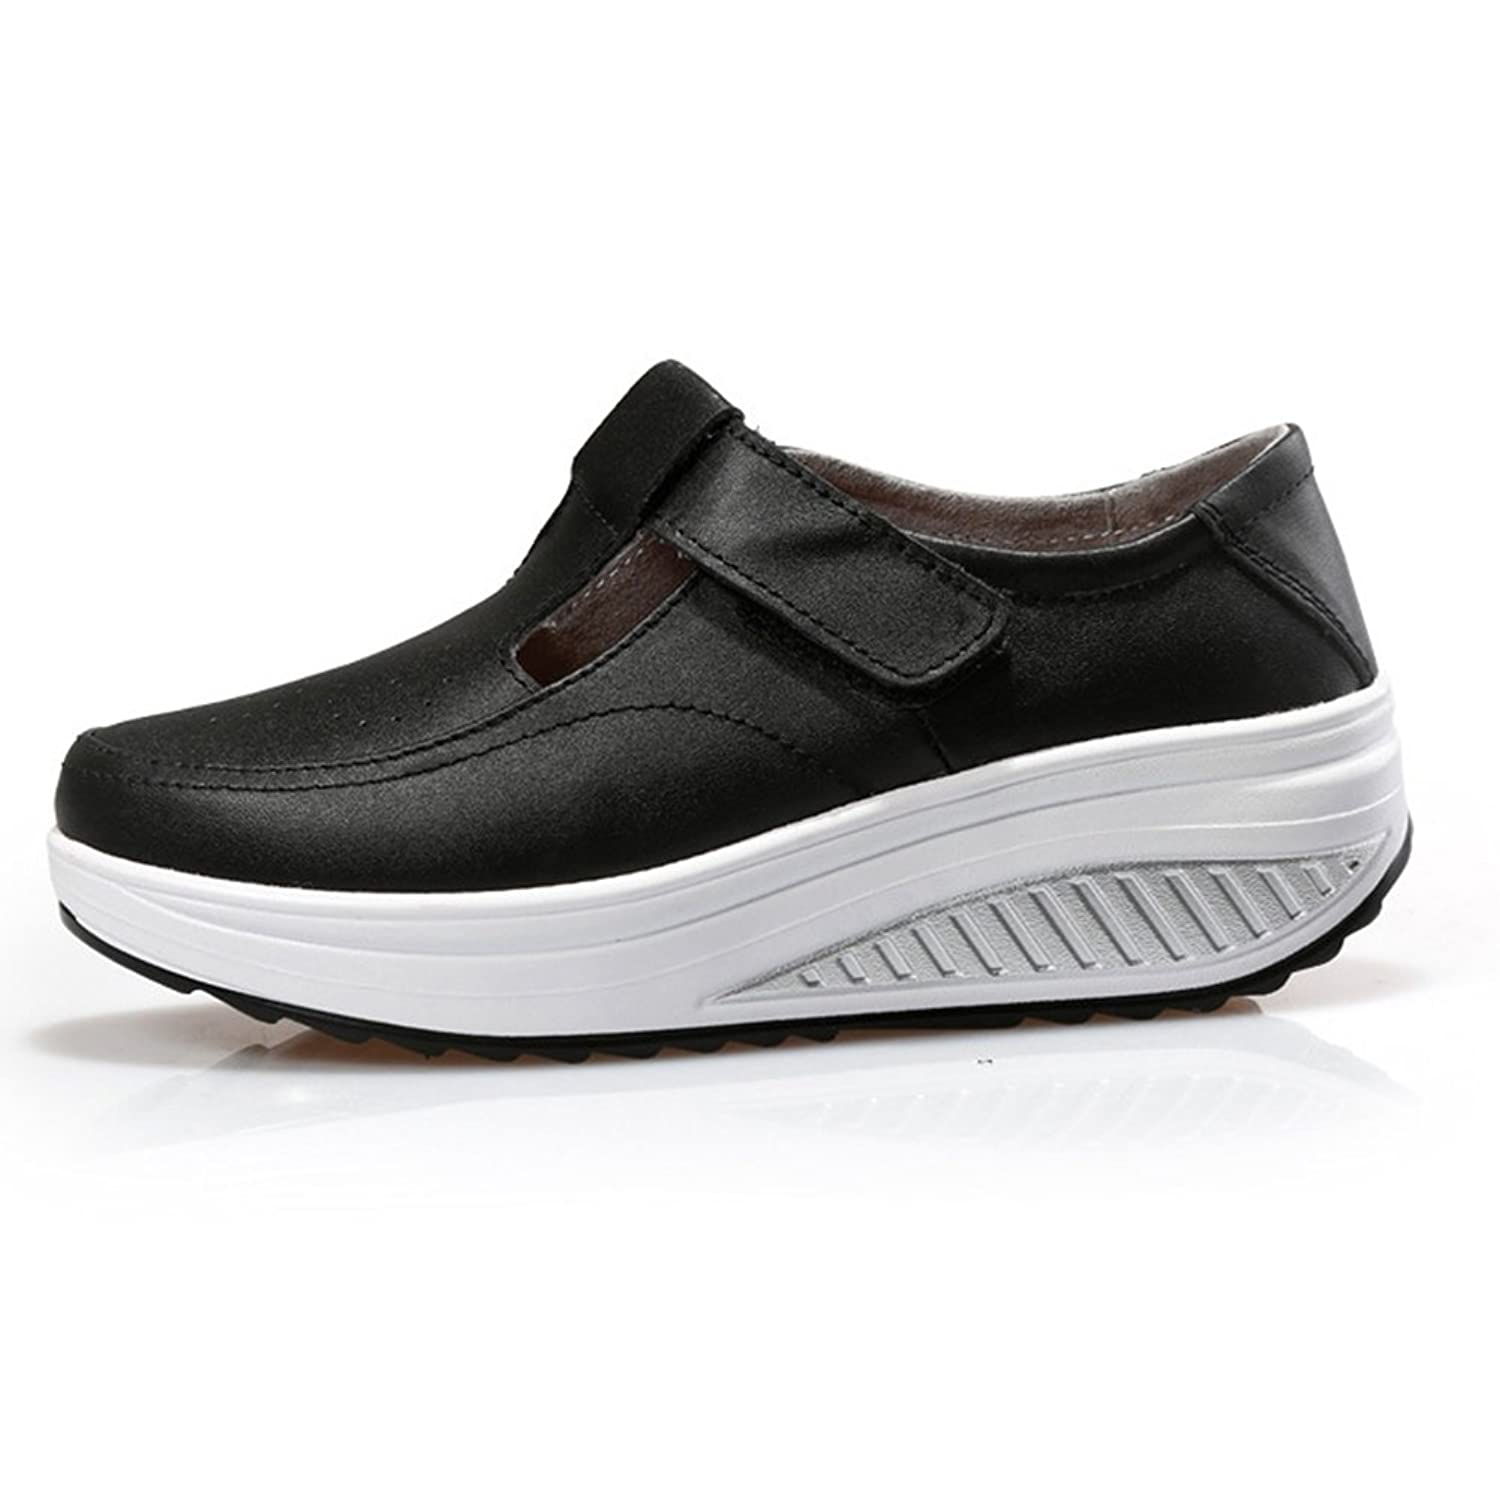 Women's Fashion Waking Shoes Canvas Slip On Breathable Thick Base Travel Shoes By Btrada